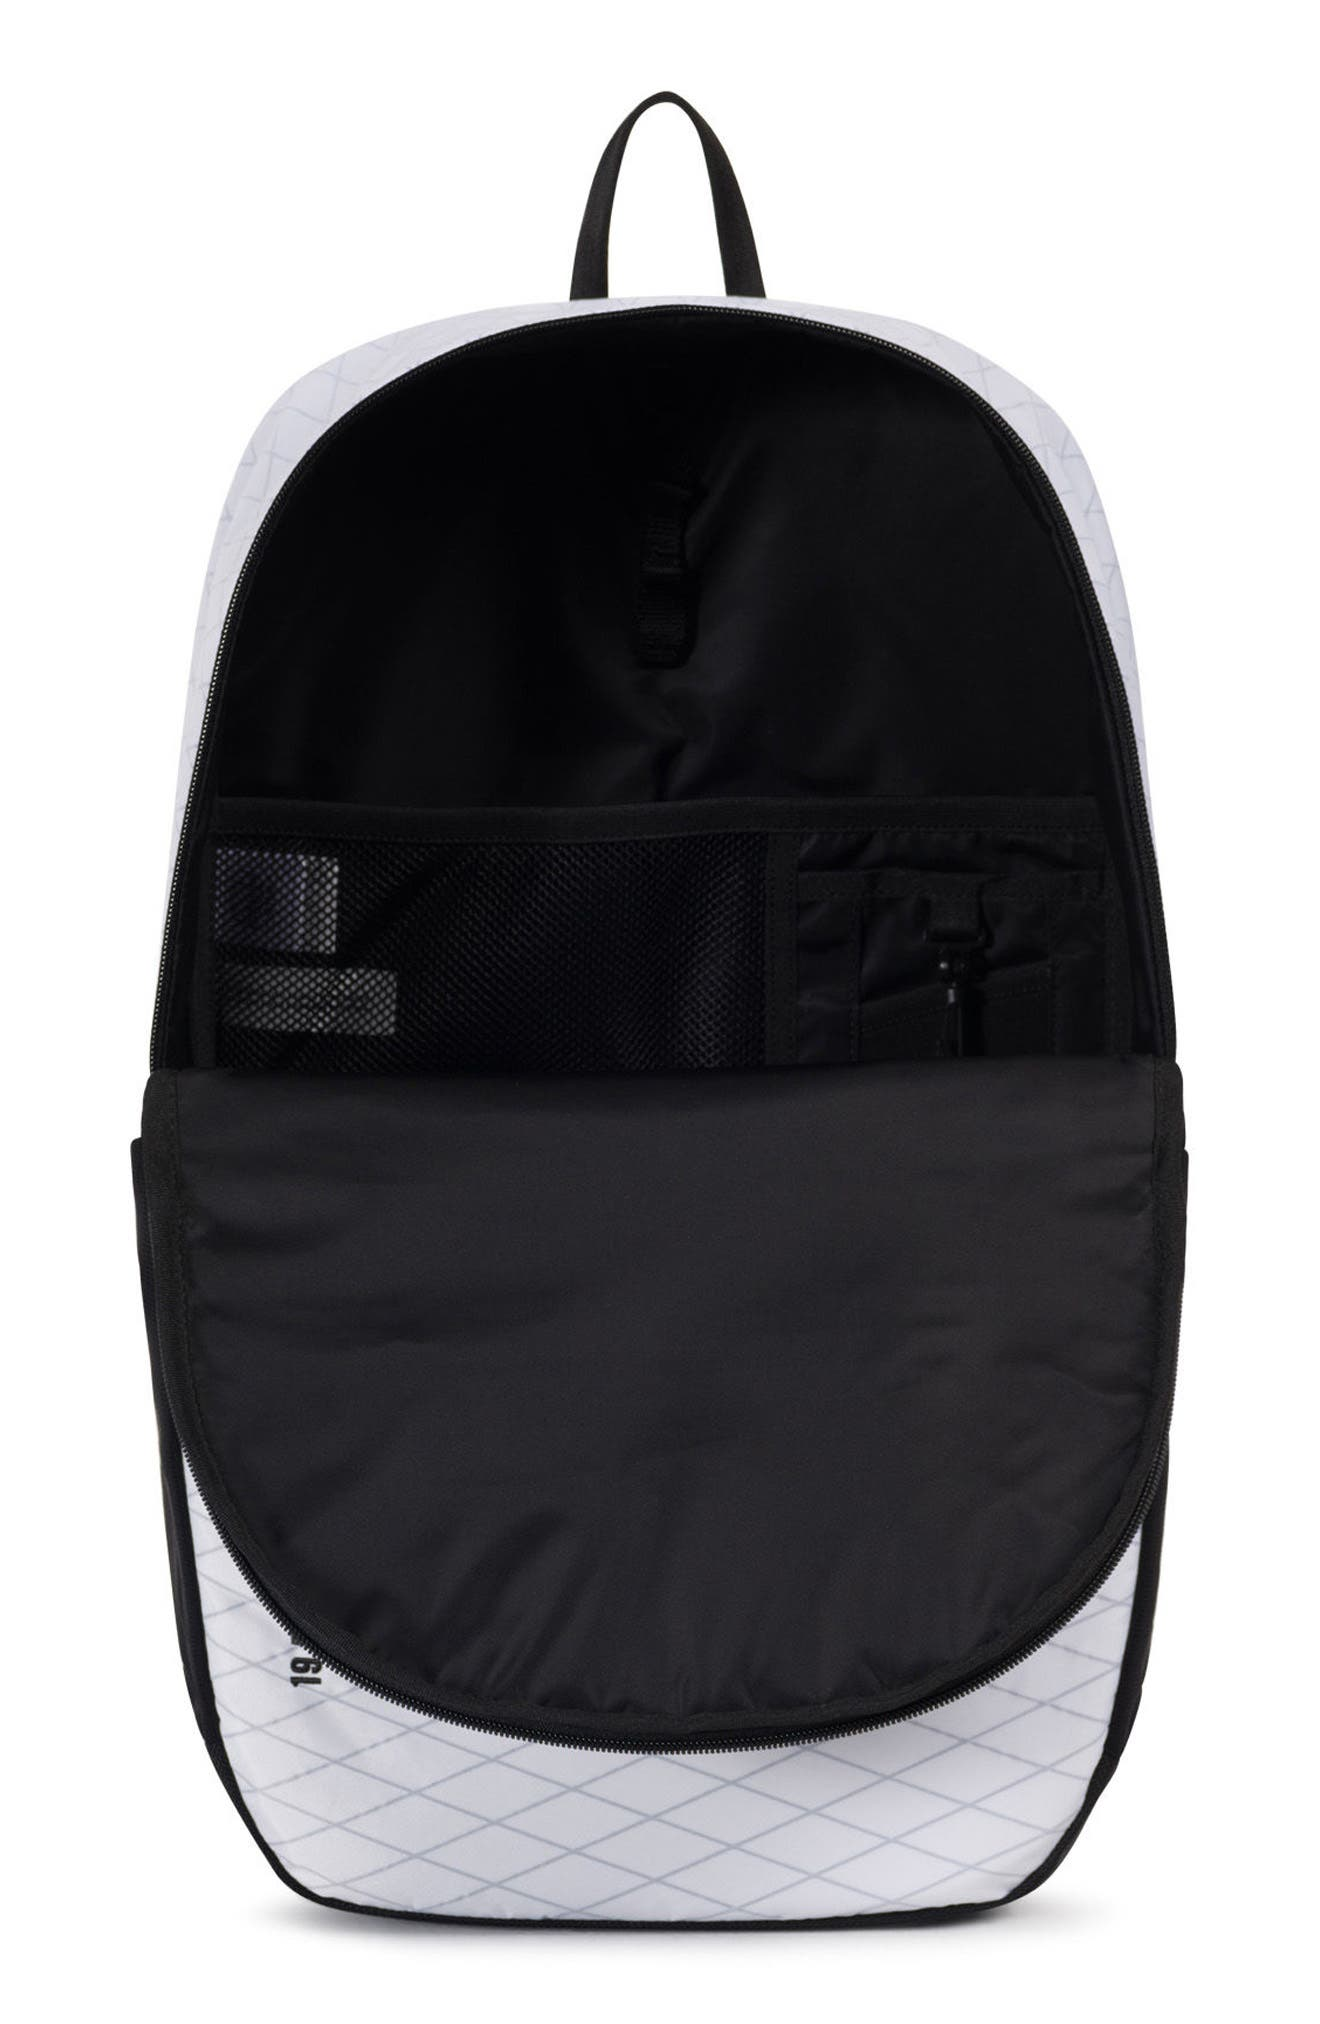 Trail Sailcloth Mammoth Large Backpack,                             Alternate thumbnail 3, color,                             White/ Black